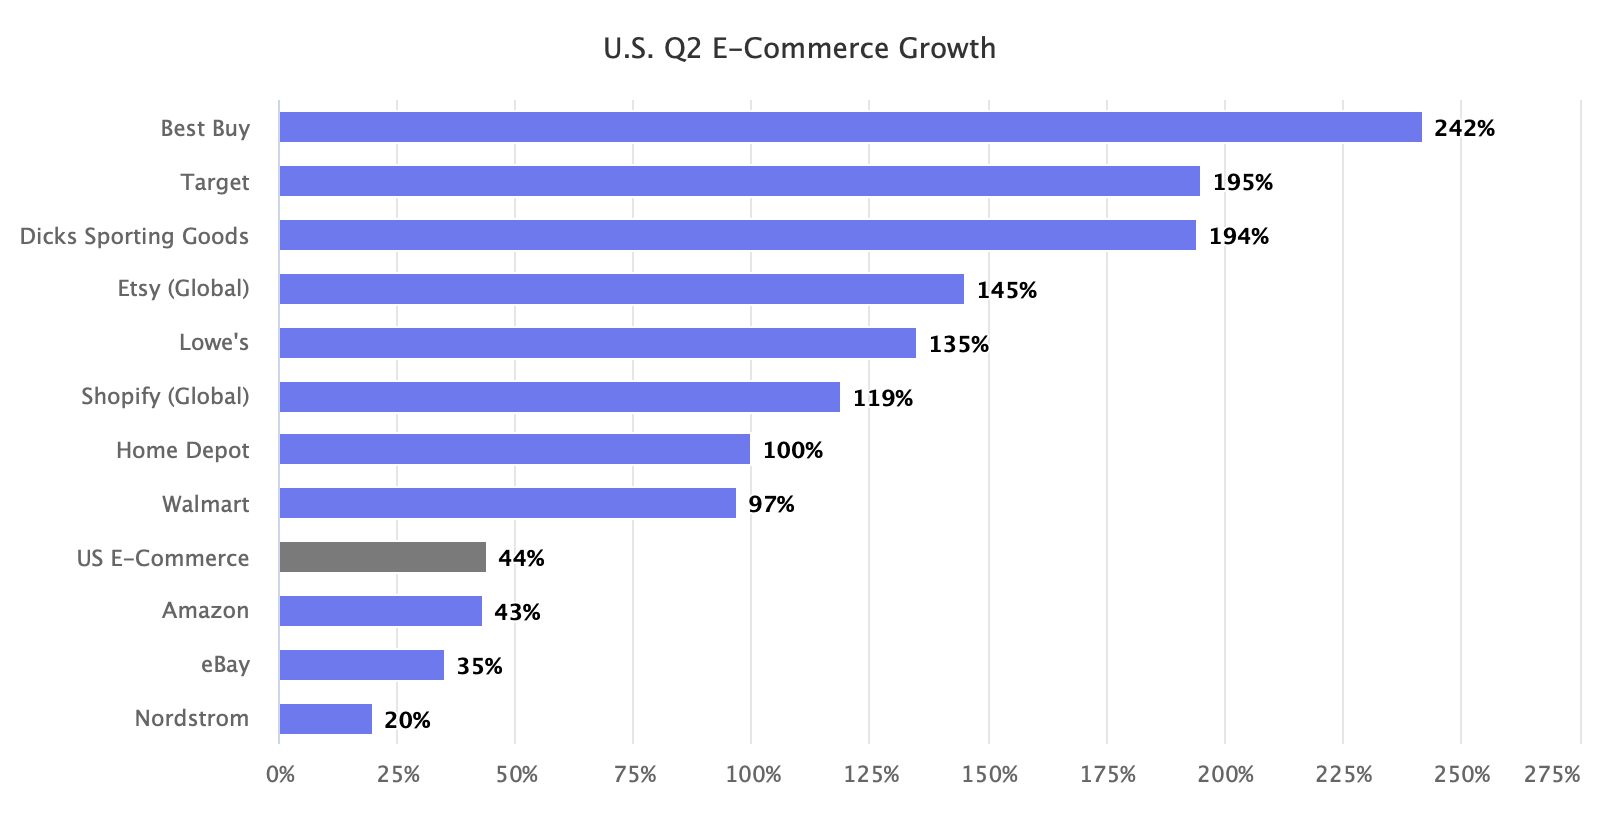 U.S. Q2 E-Commerce Growth